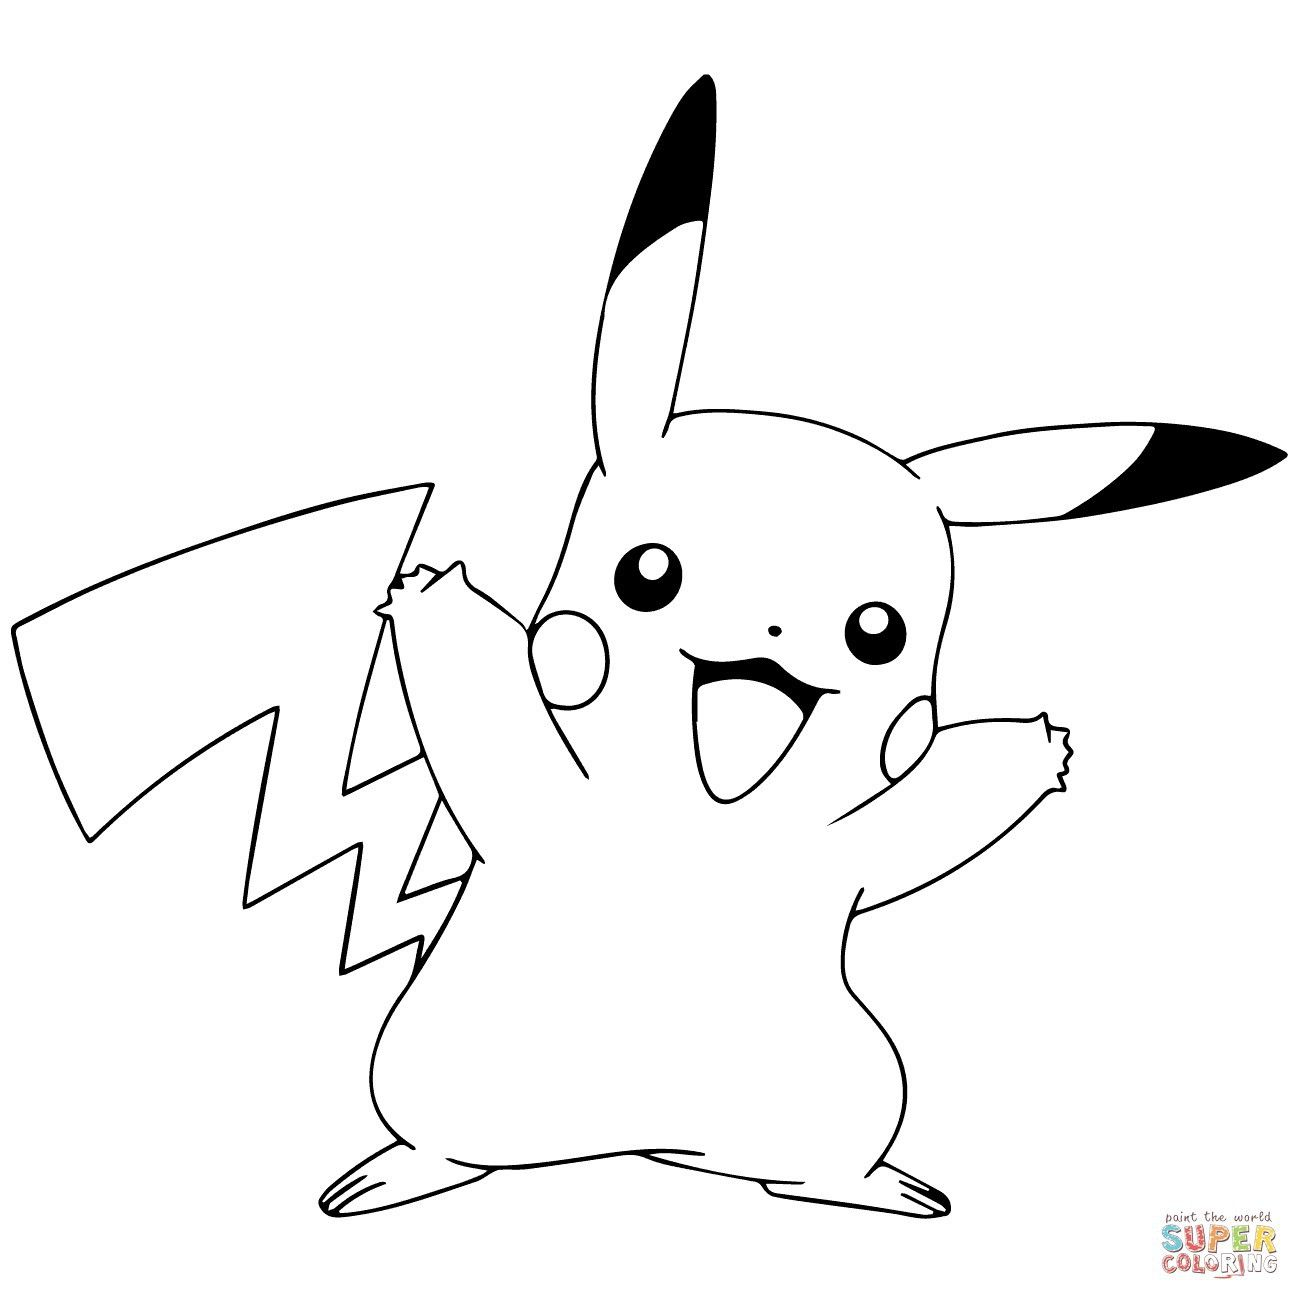 Pikachu Pokemon Go Coloring Pages Pikachu Coloring Page Pokemon